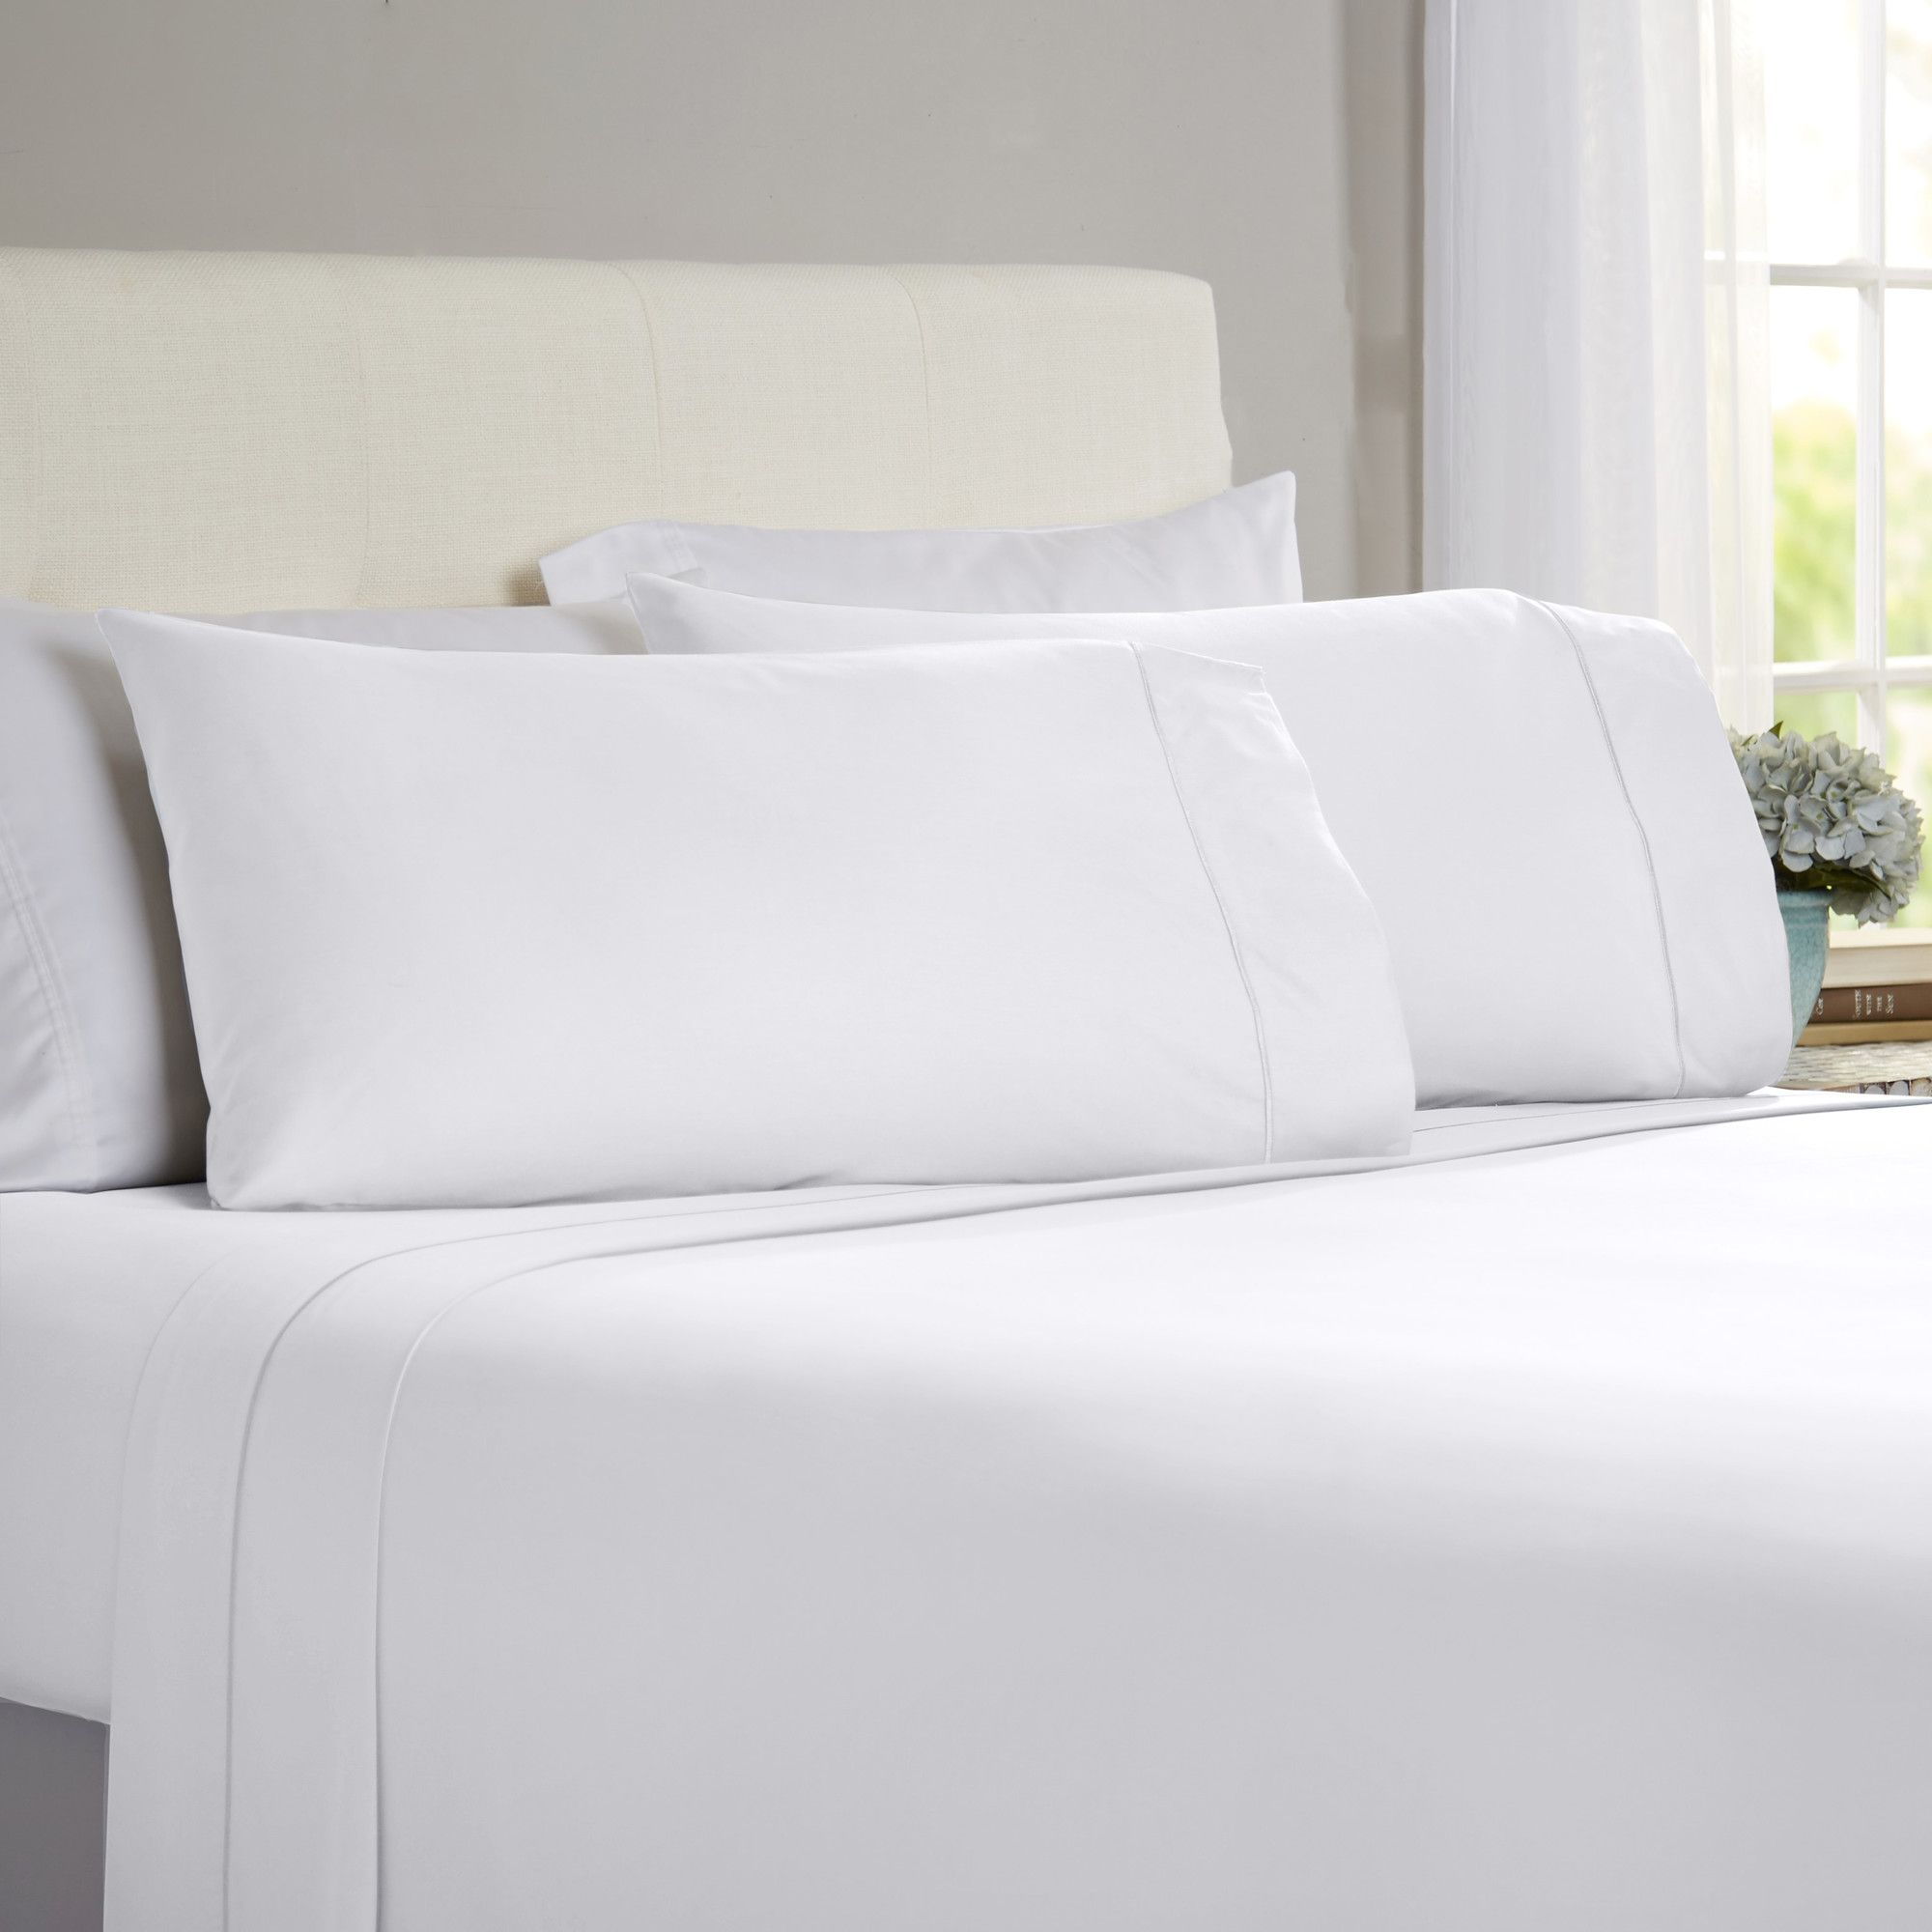 Hobbes piece thread count egyptian quality cotton sheet set